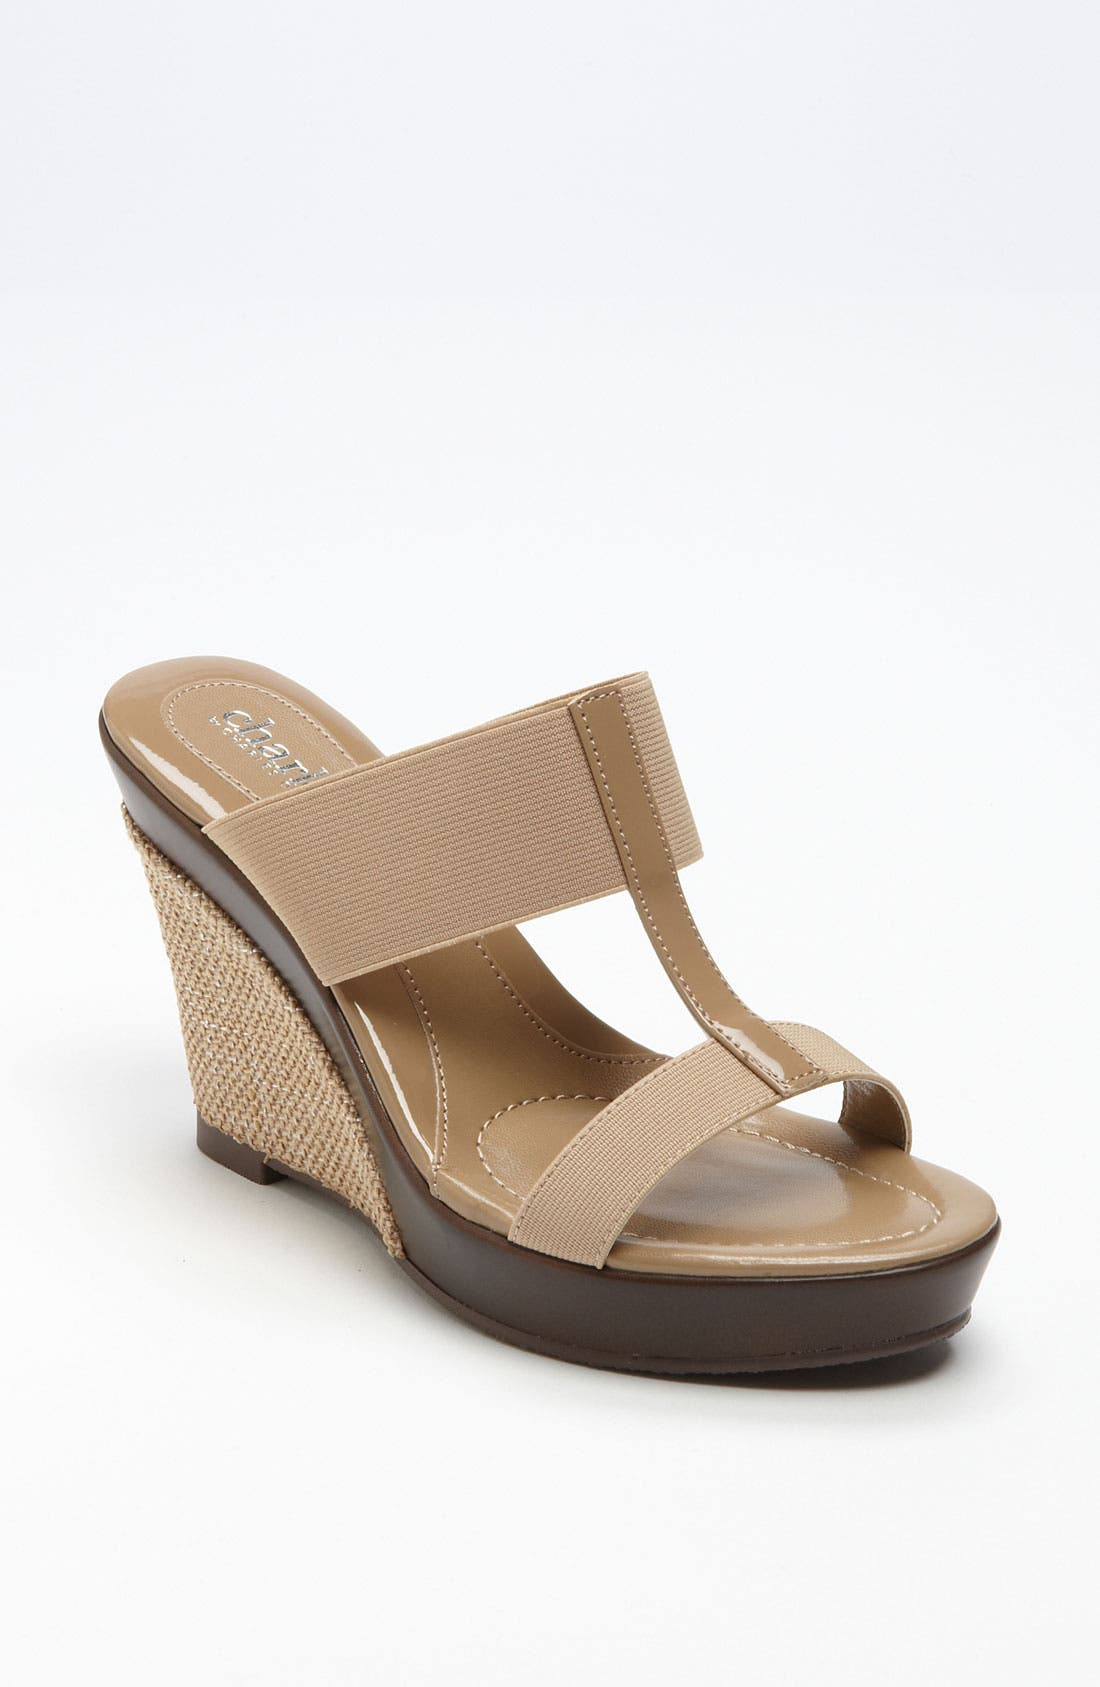 Alternate Image 1 Selected - Charles by Charles David 'Tick Tock' Sandal